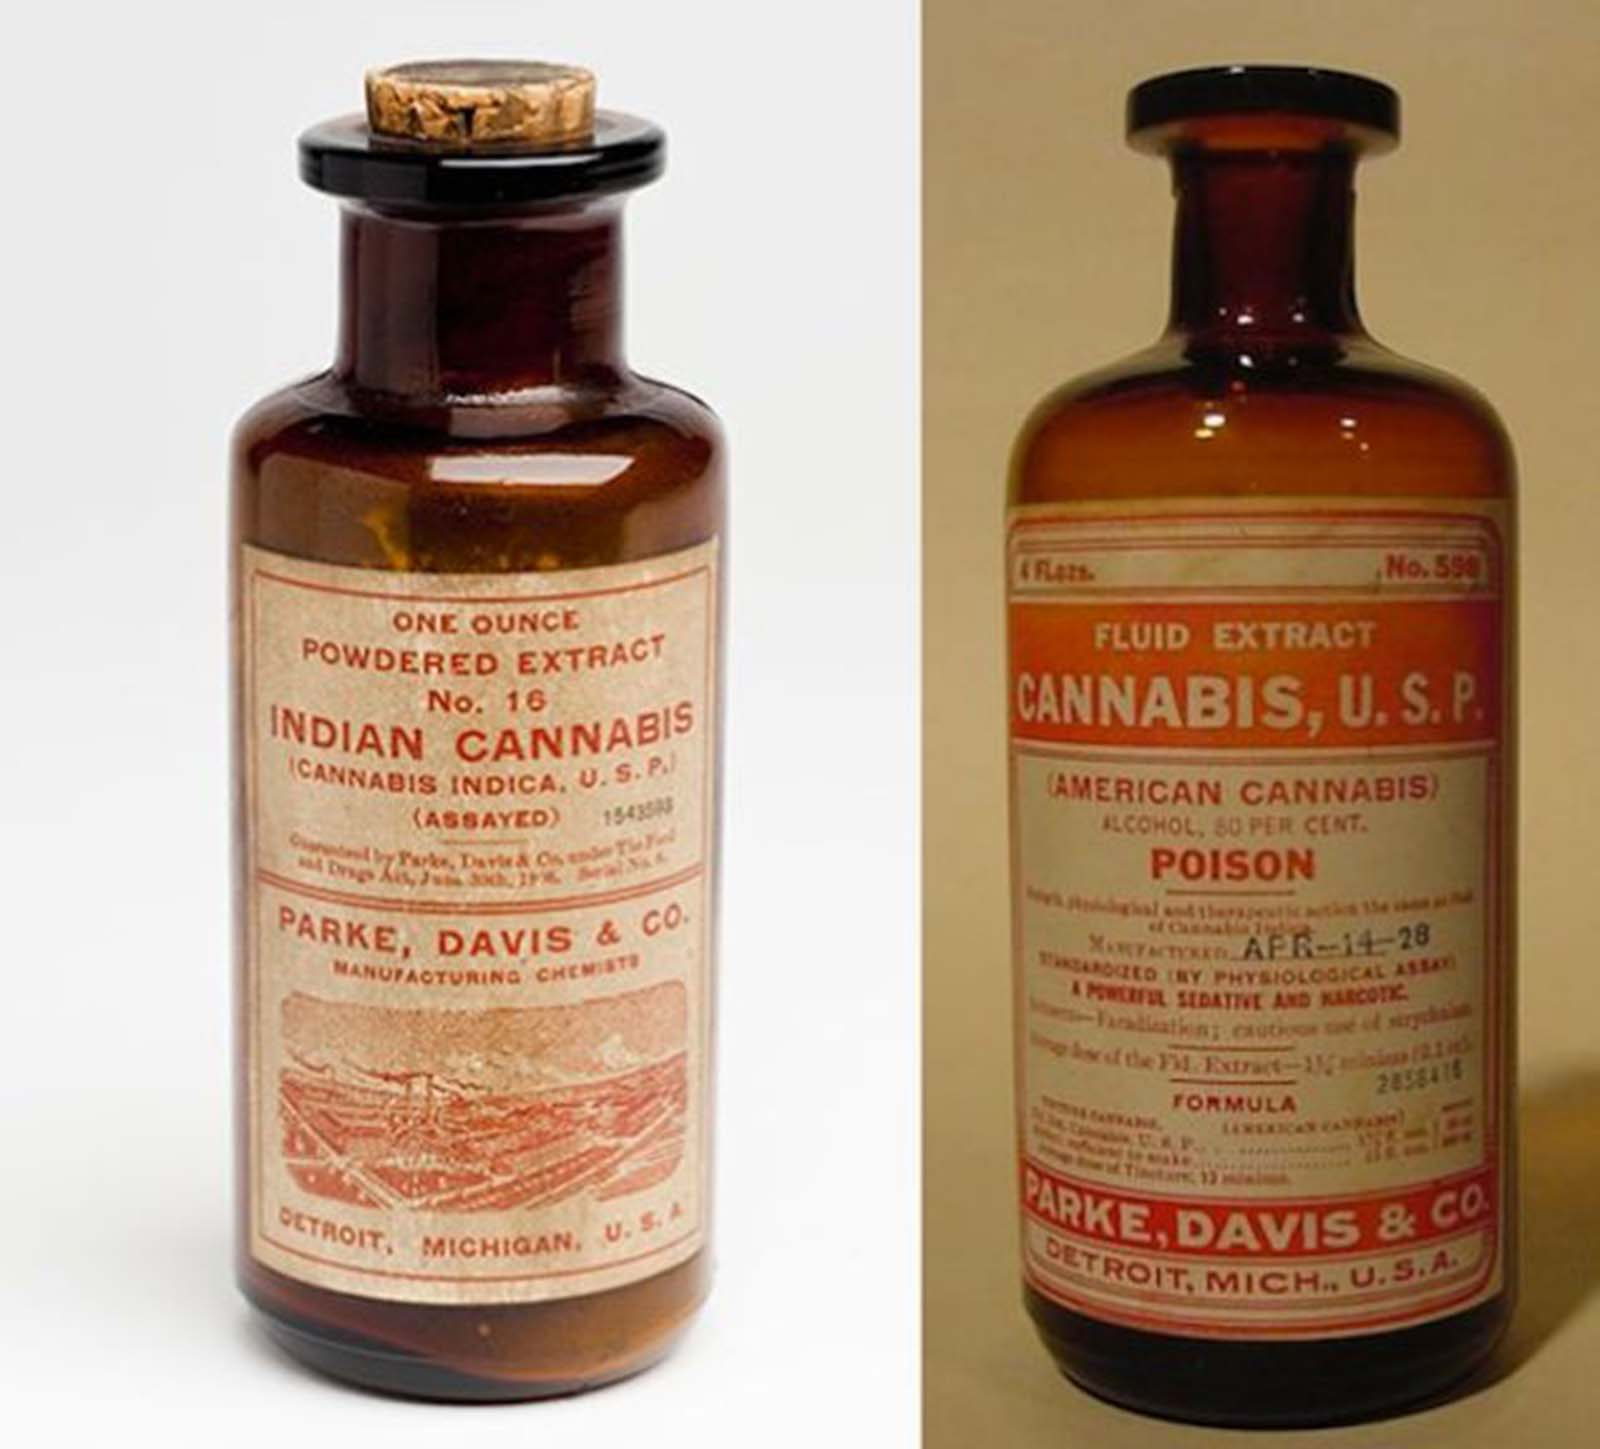 Indian and American Cannabis. This was also used for pain relief, but it doubled as a tonic for coughing, sleeplessness, and loss of appetite.